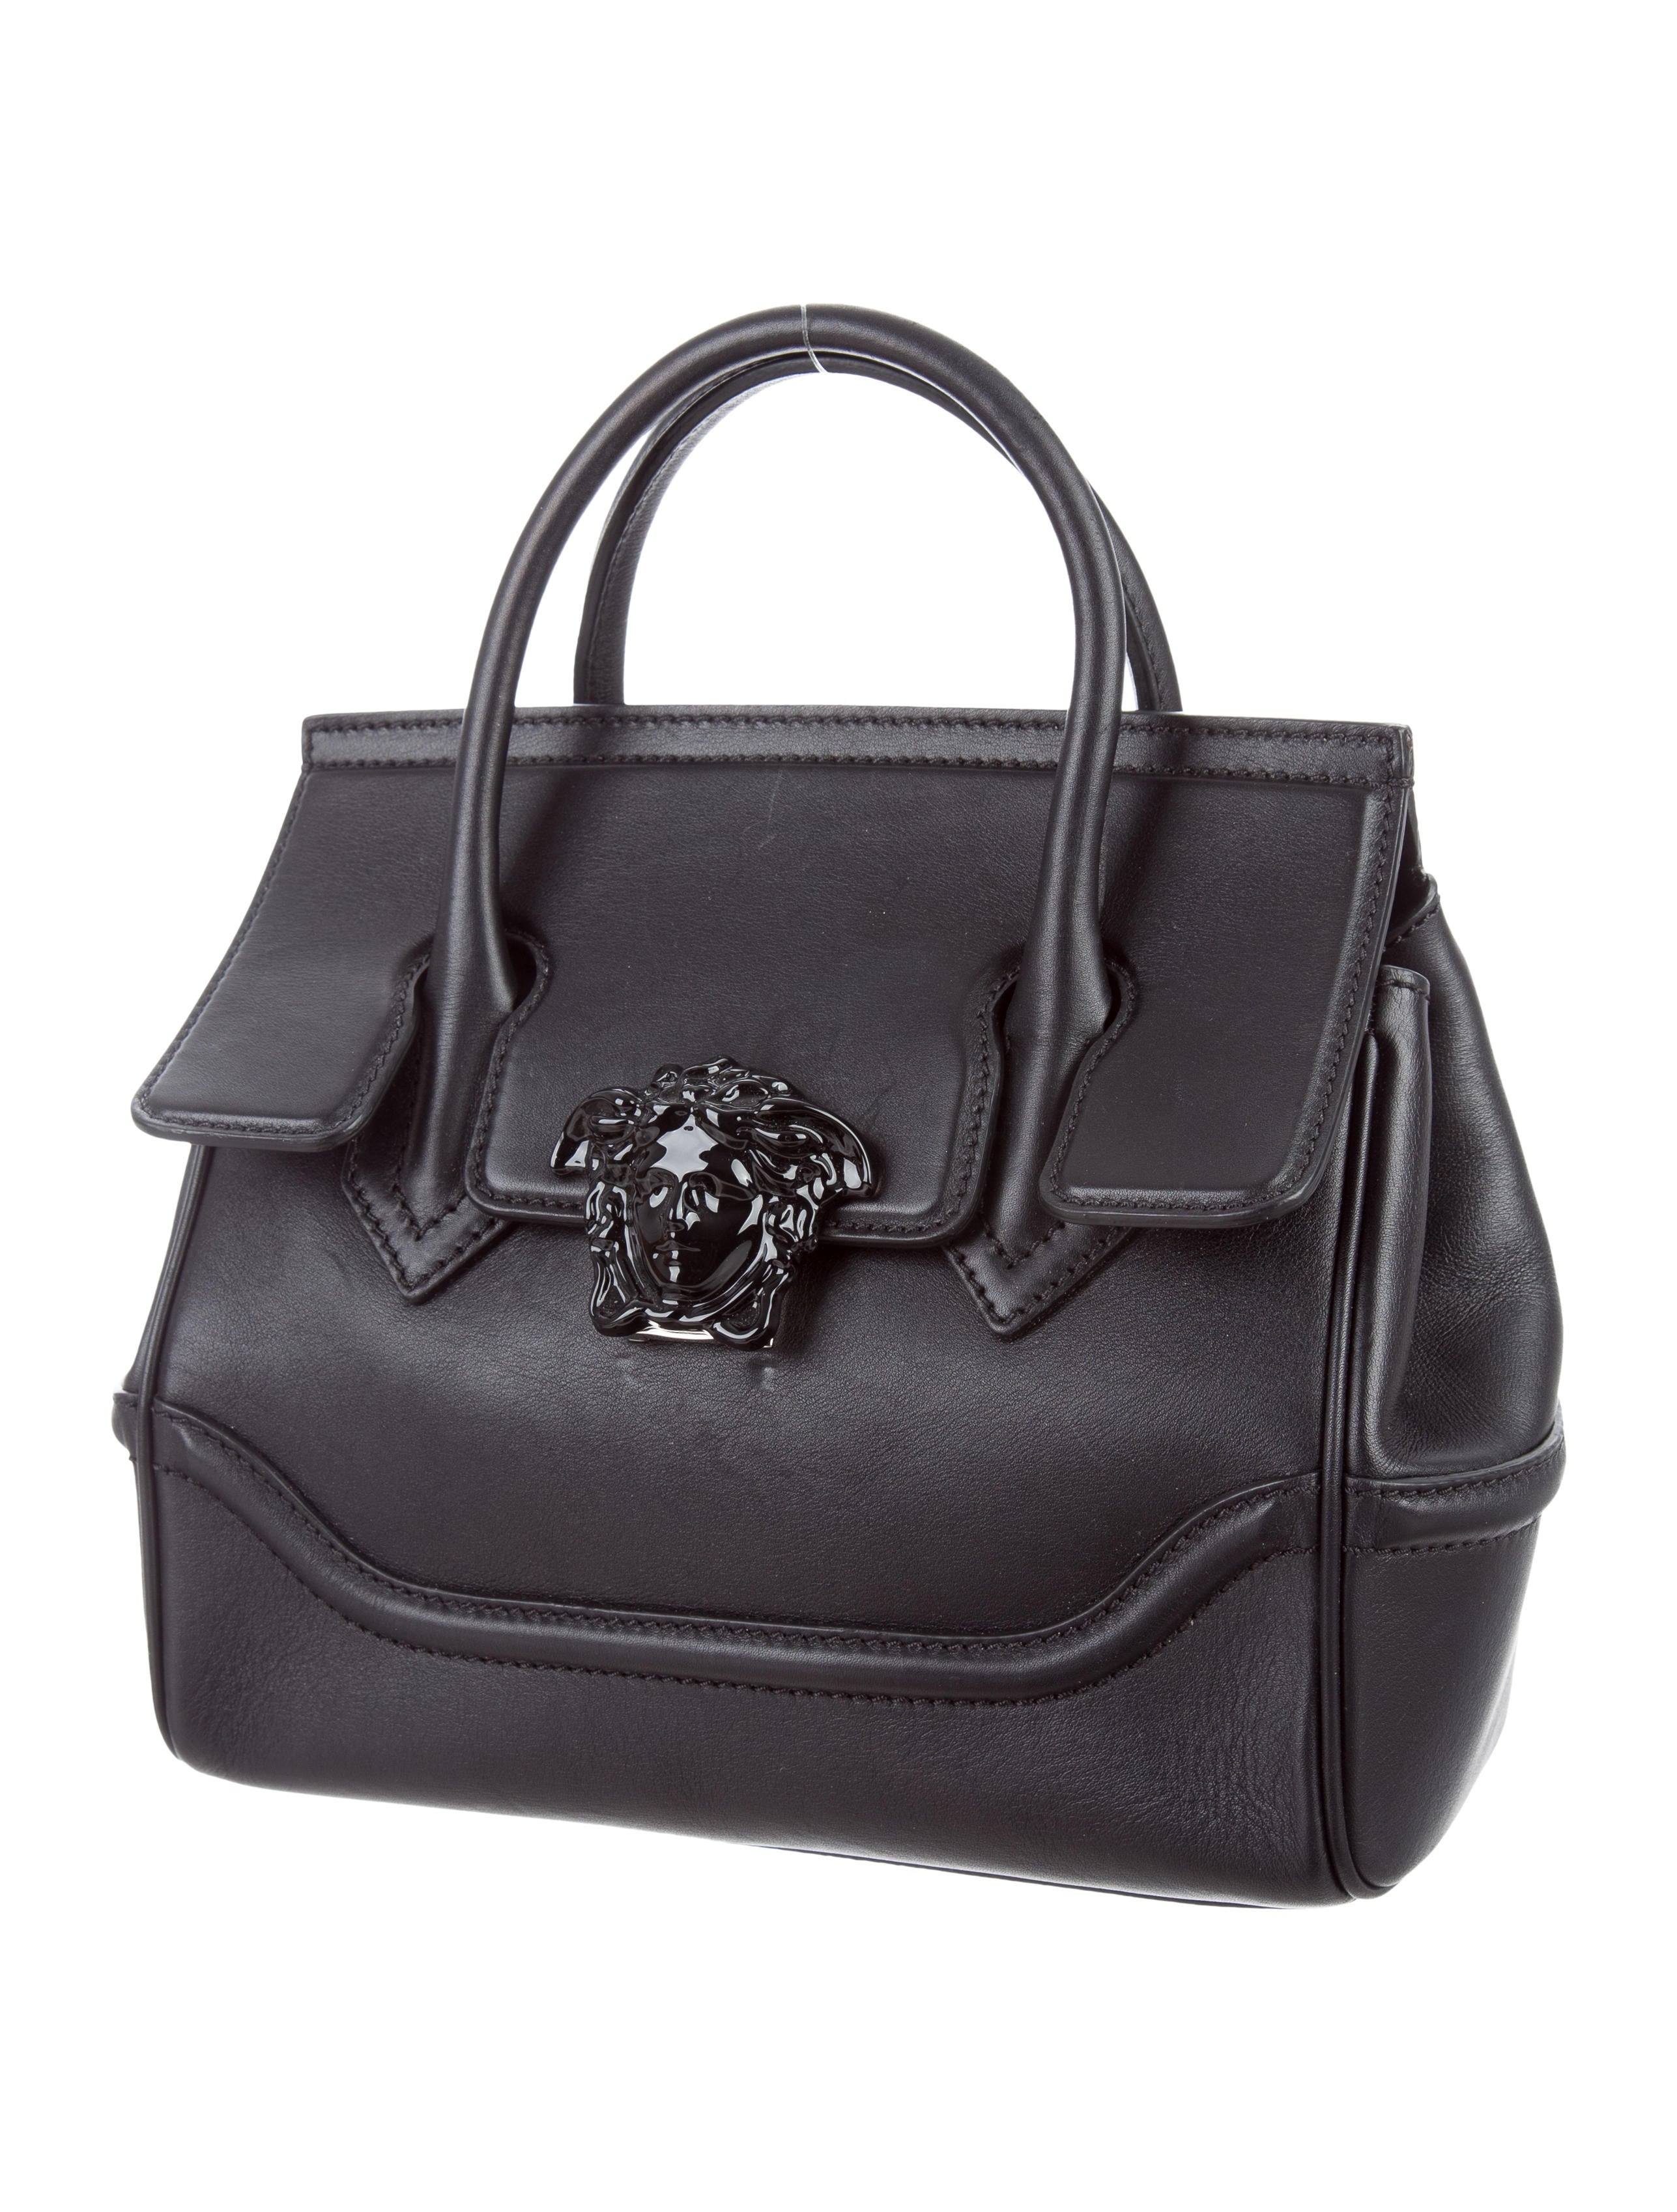 Versace Palazzo Empire Bag Handbags VES30480 The  : VES304803enlarged from www.therealreal.com size 2574 x 3396 jpeg 725kB